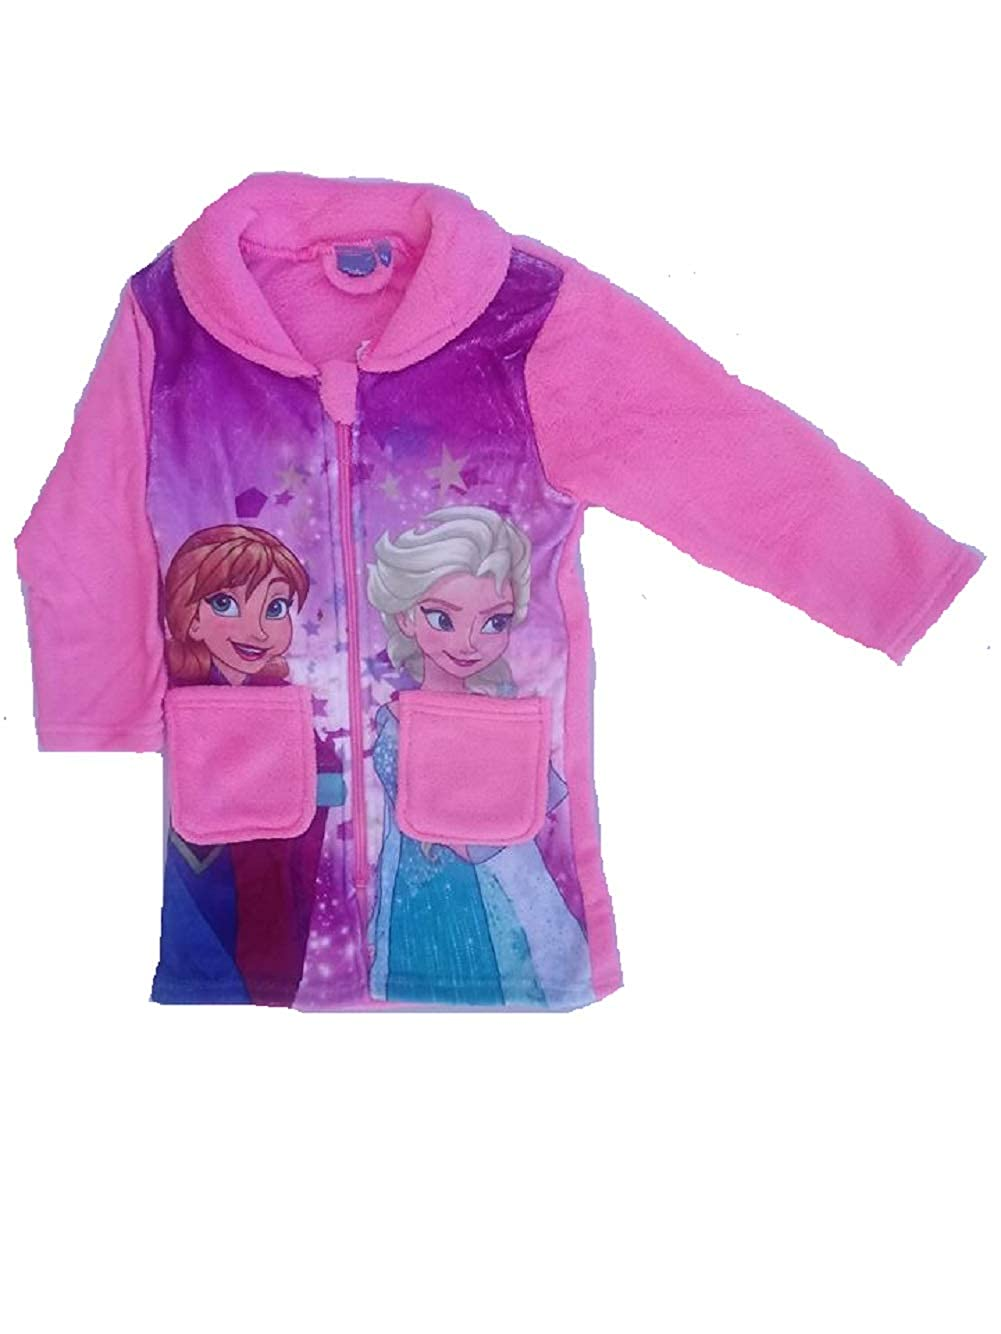 GladRags Girls Frozen Dressing Gown Size 3 4 5 6 7 8 Years Character Fleece Bathrobe